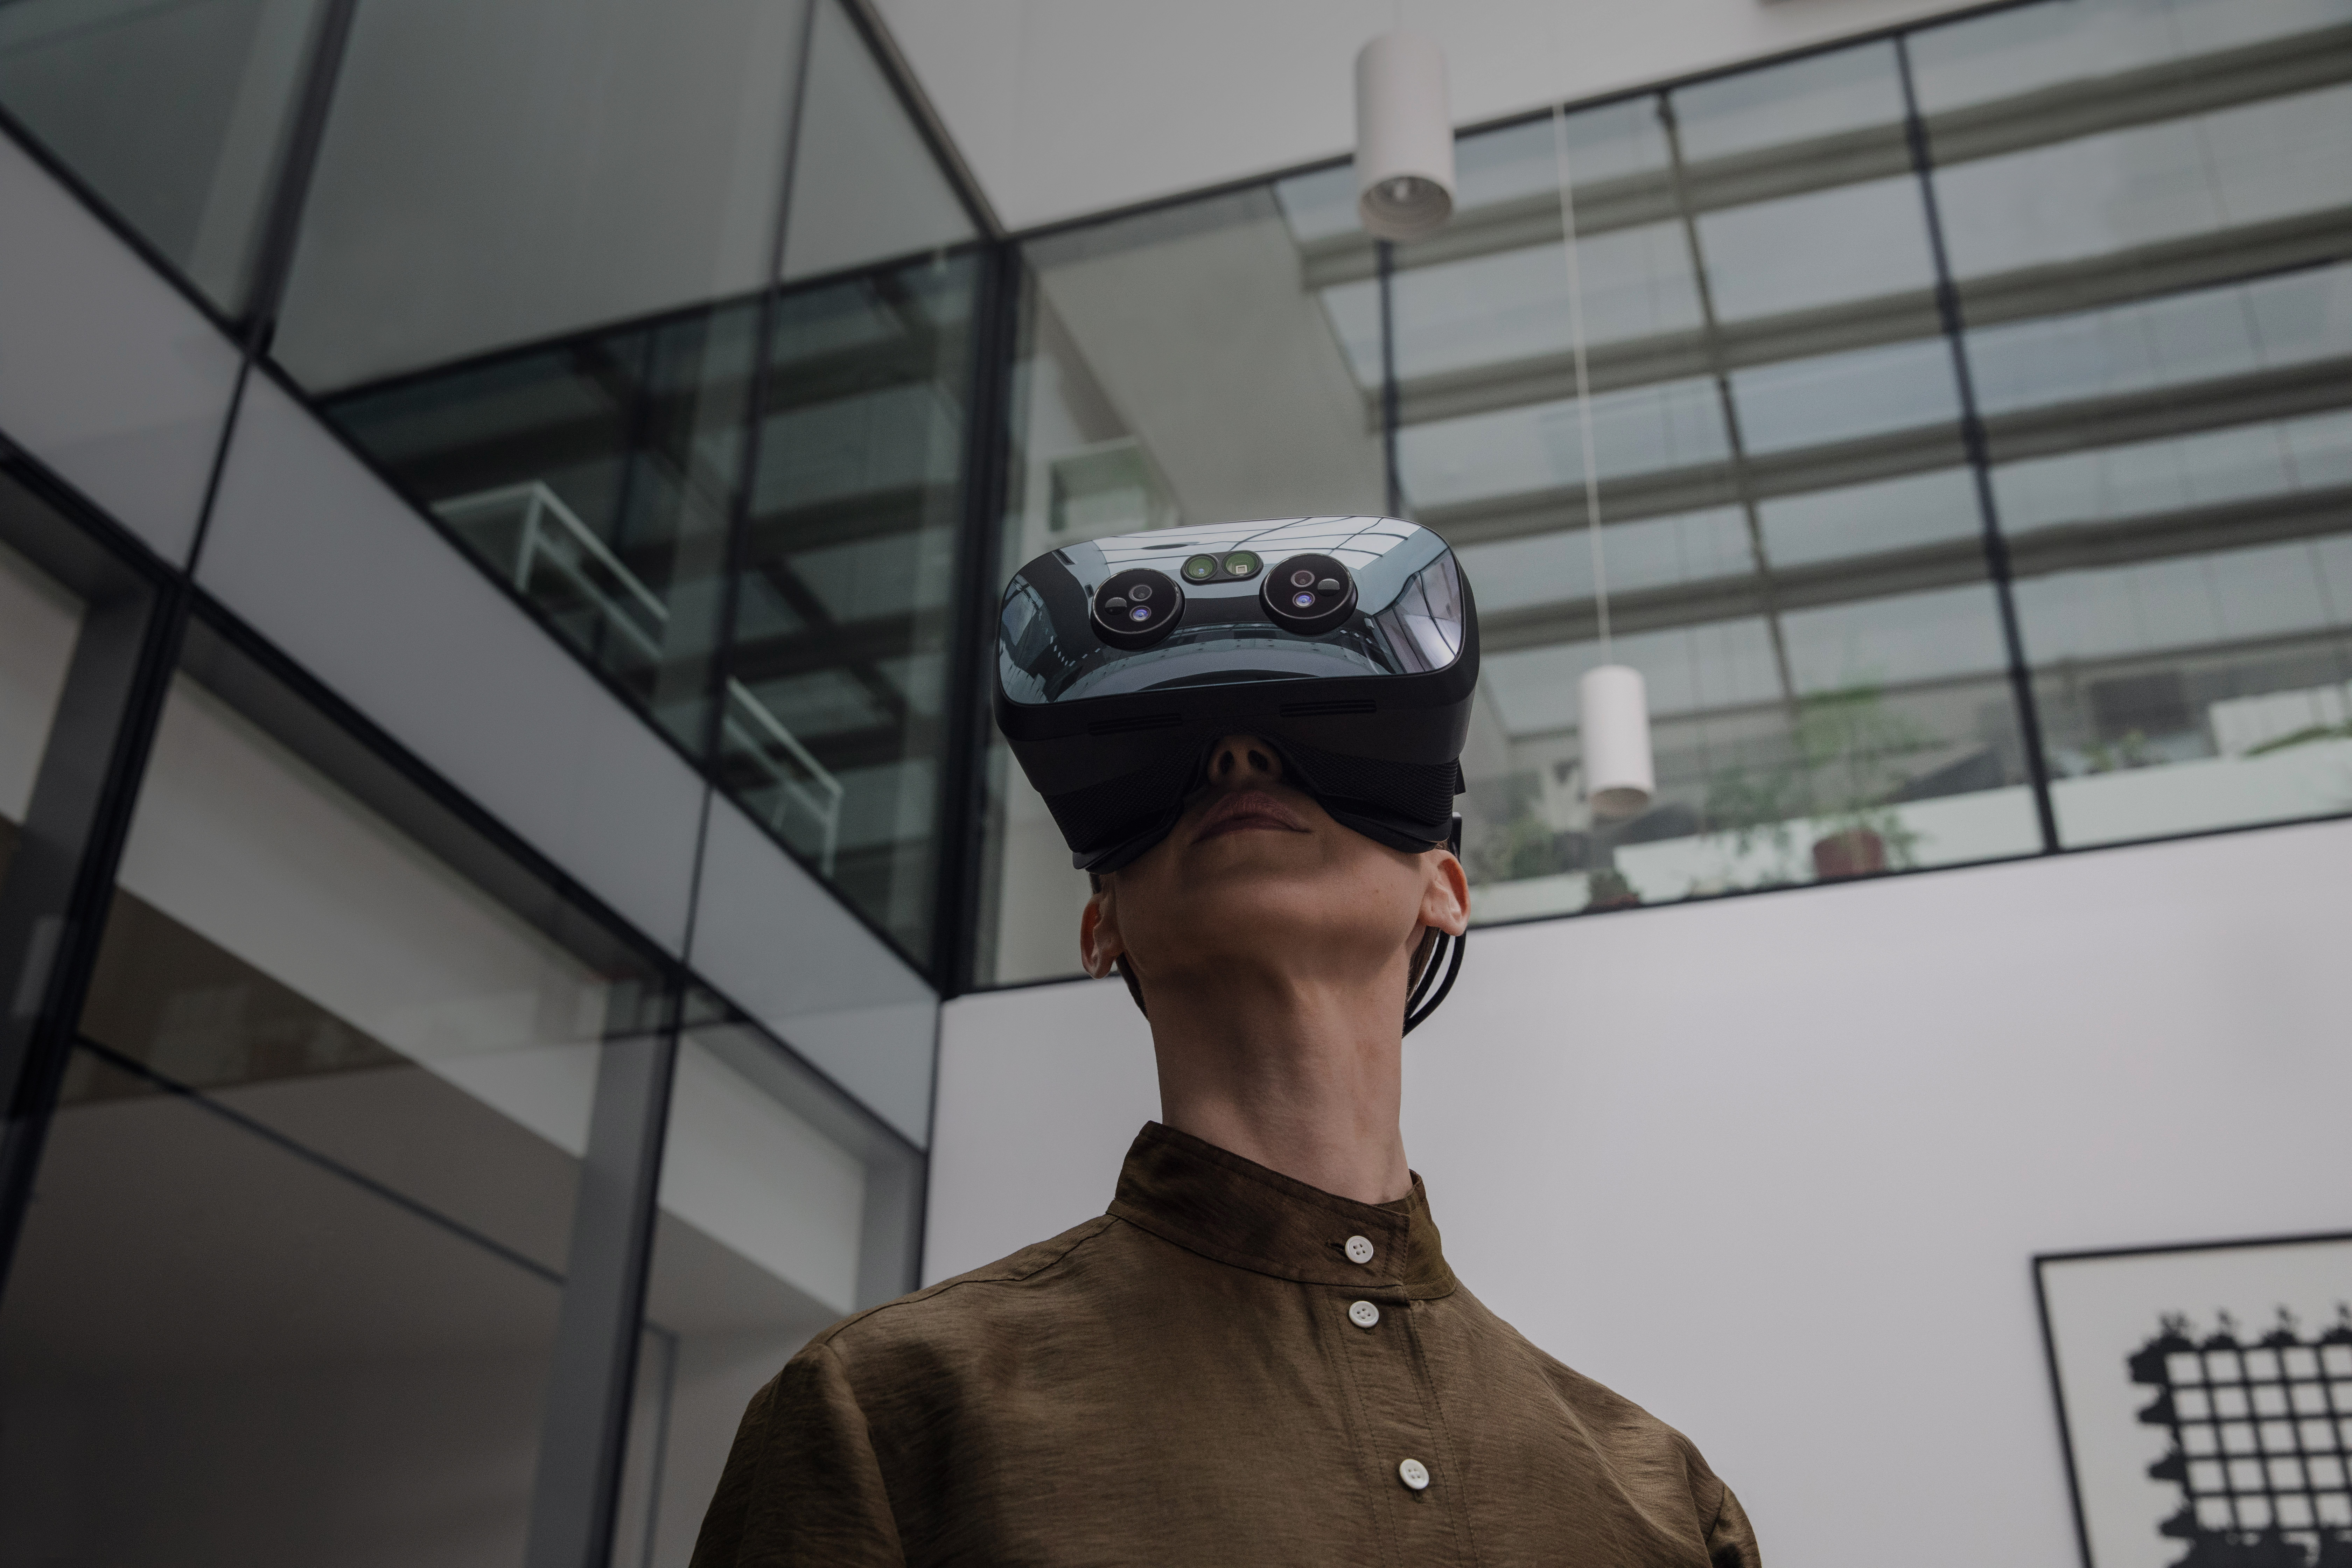 Varjo provides the world's most advanced XR and VR software and services so your business can succeed and perform better with our devices.